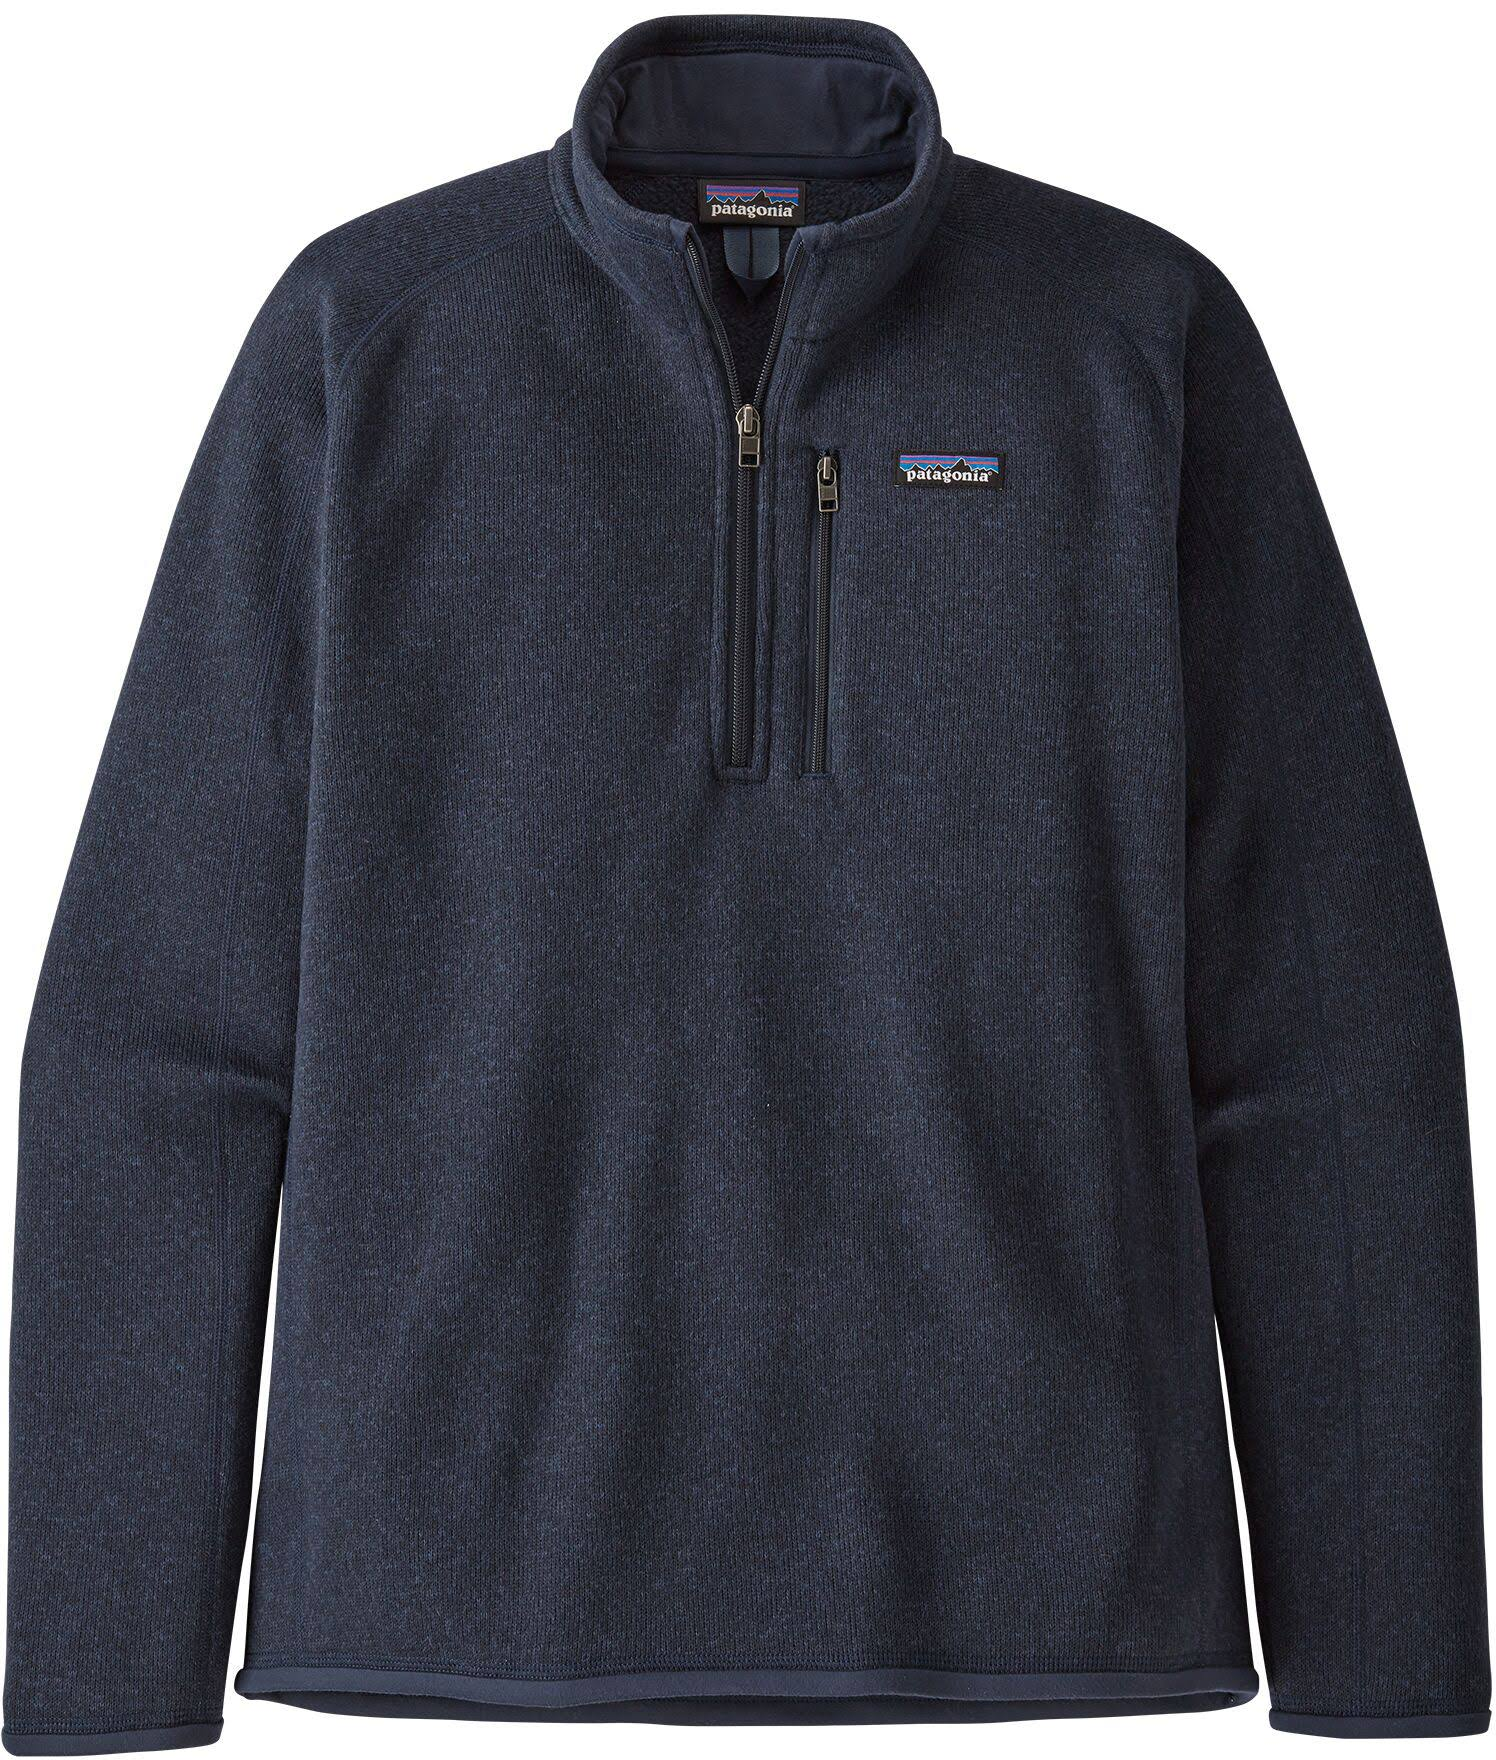 Patagonia Better Sweater 1/4 Zip, M / New Navy